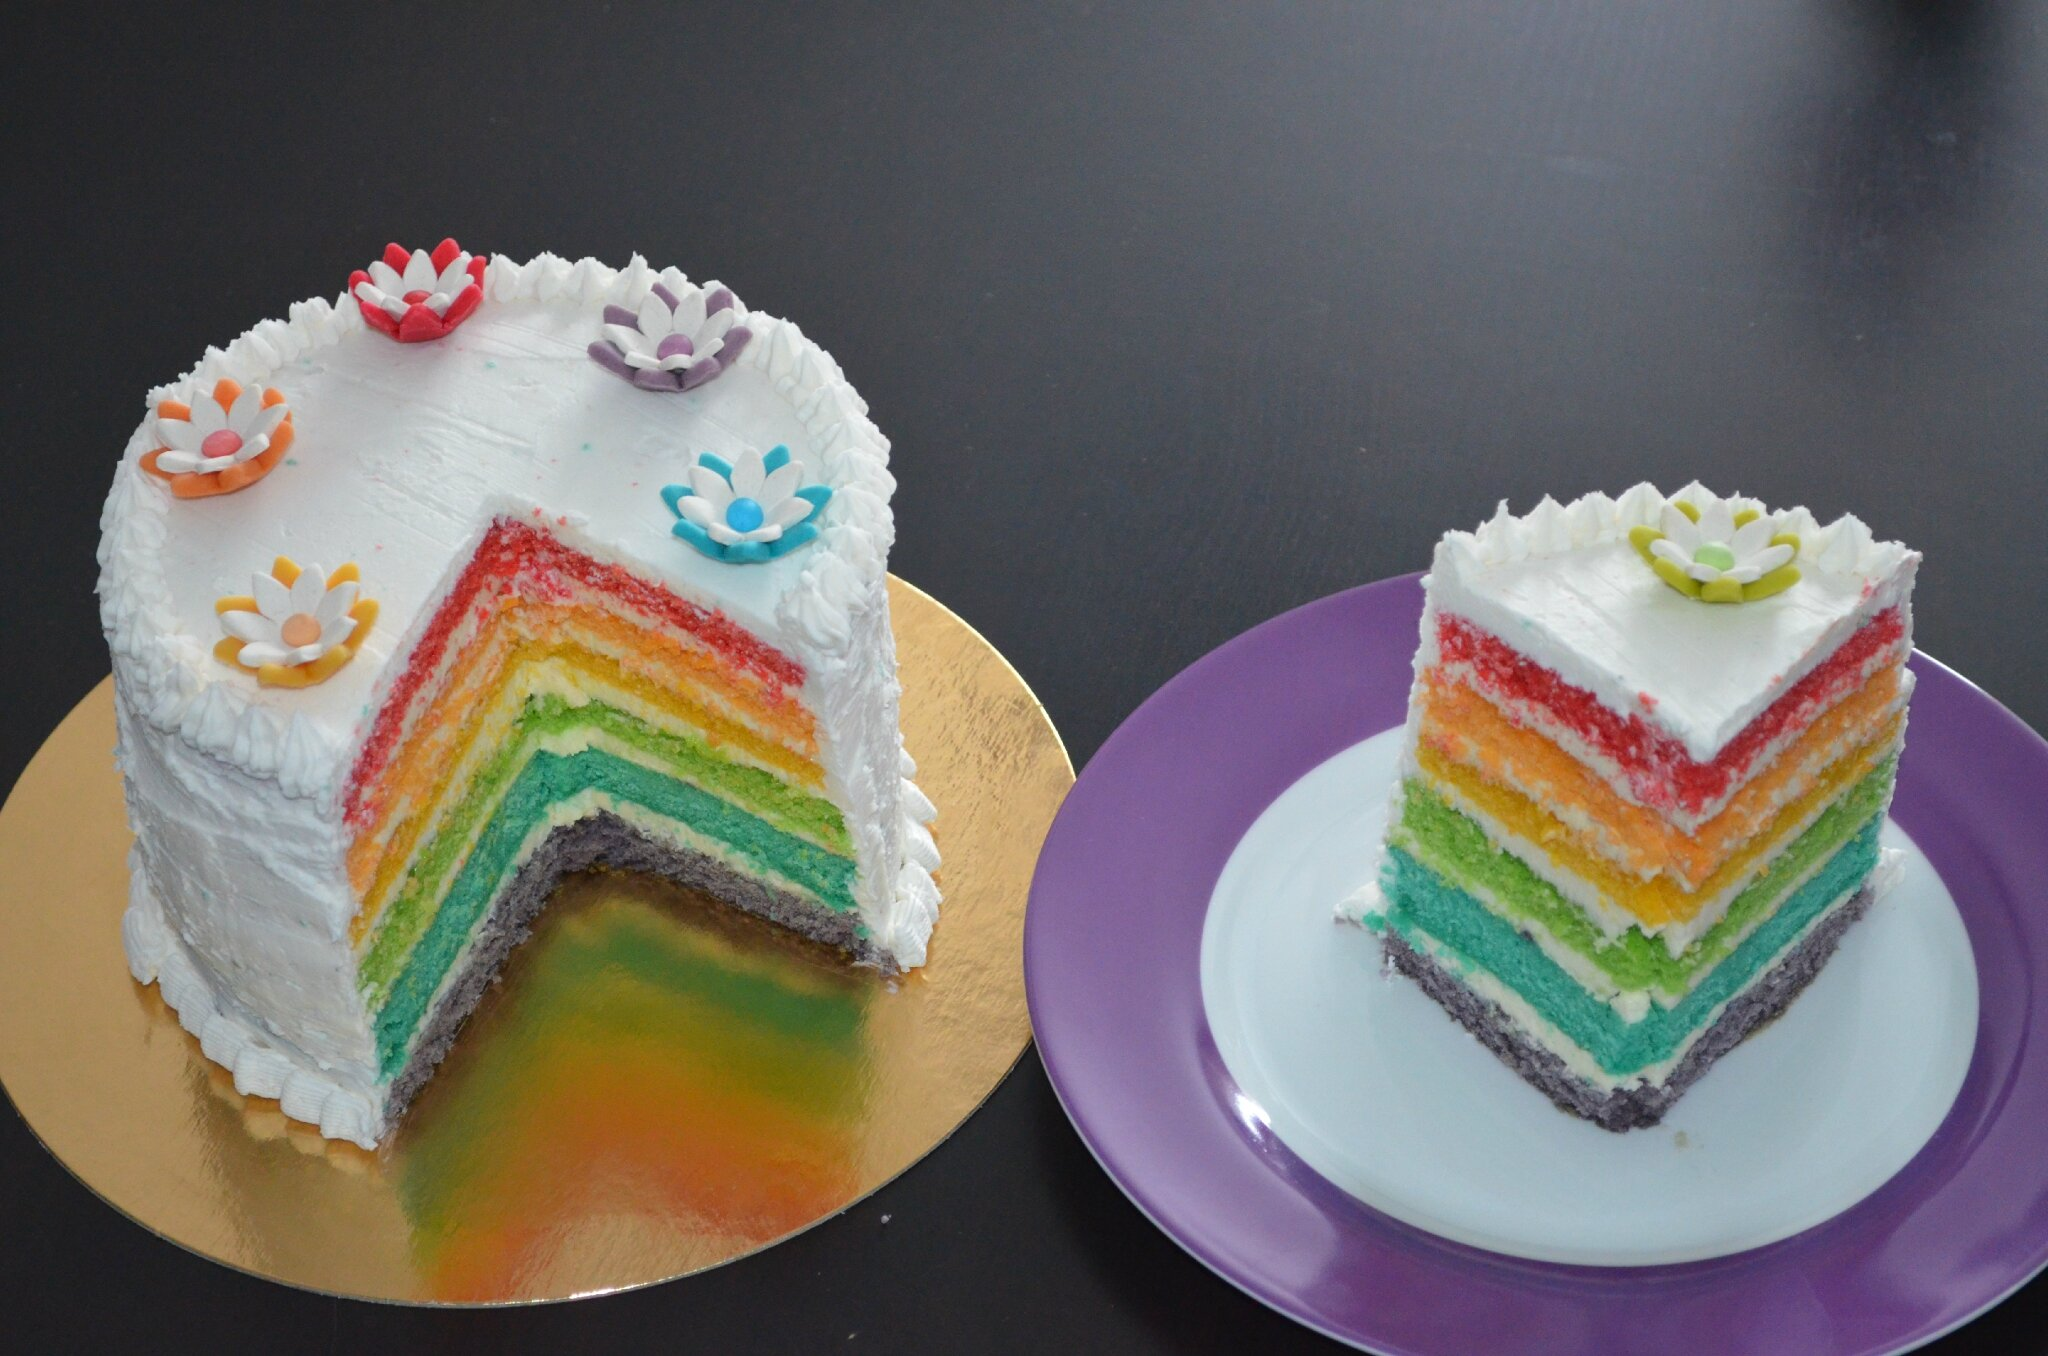 Photo Design On Cake : Un essai au Cake Design - Recette